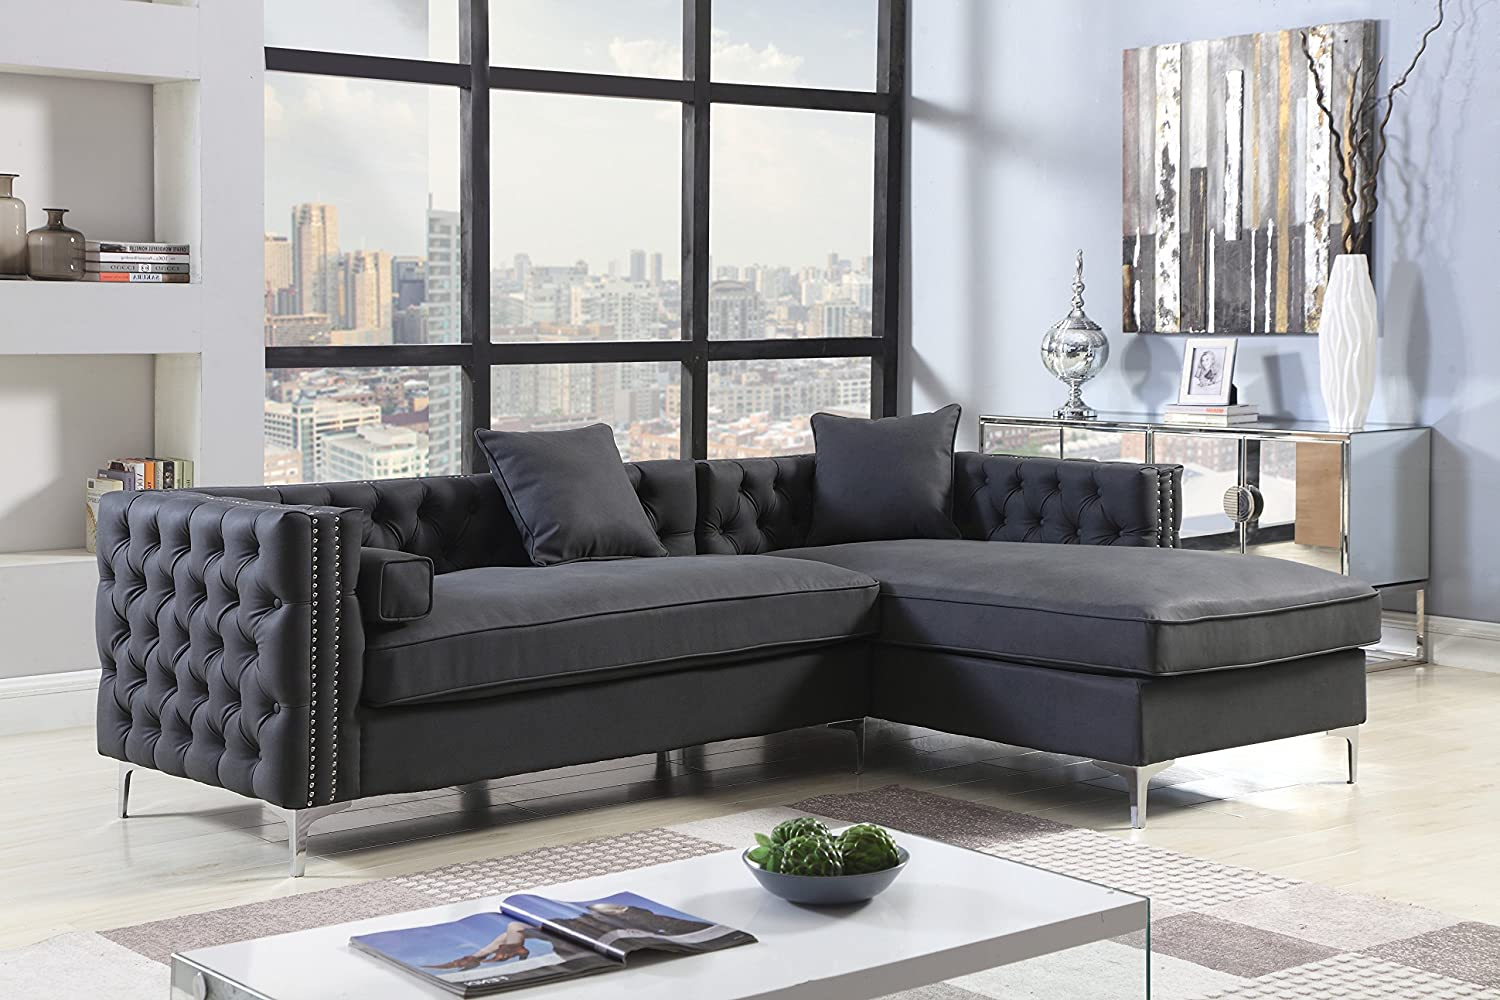 Iconic home bosch right hand facing sectional sofa l shape chaise pu leather button tufted with silver nailhead trim silvertone metal leg with 3 accent